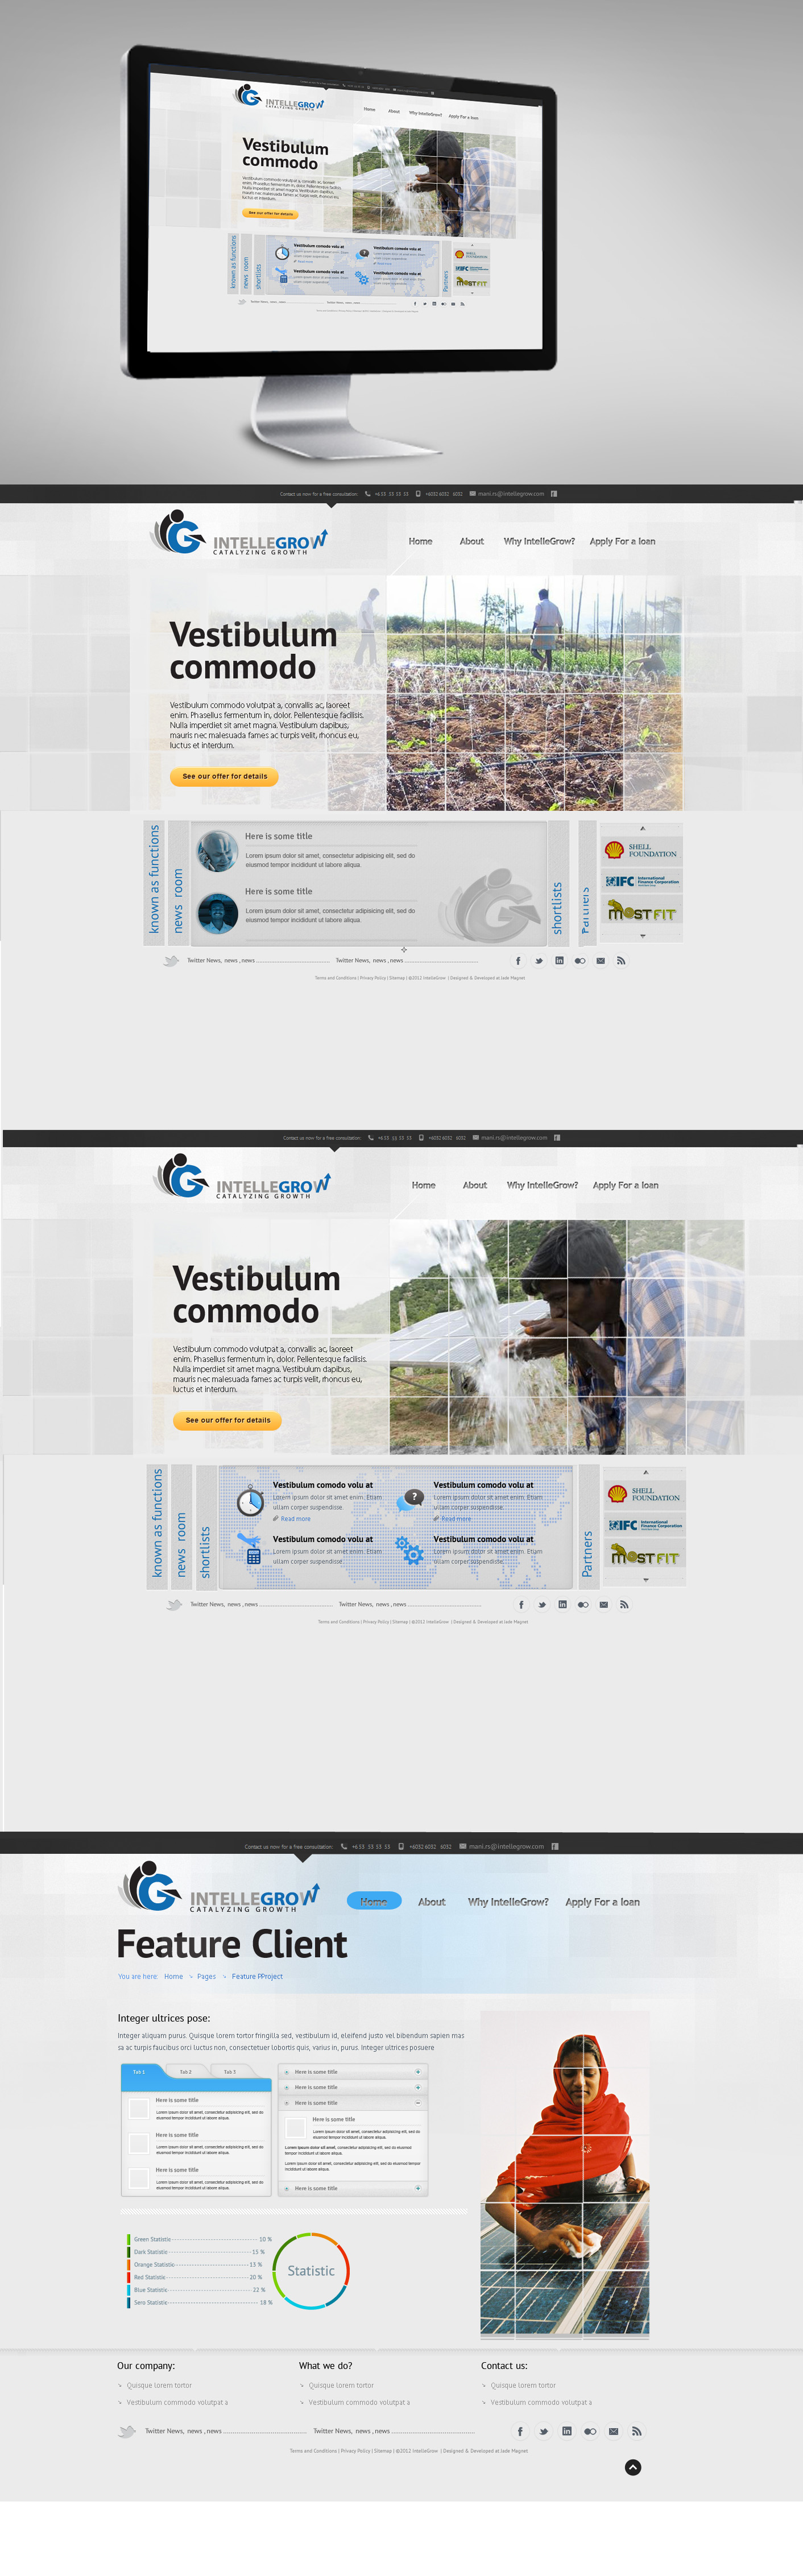 Web Page Design by Oliver WangHo - Entry No. 40 in the Web Page Design Contest IntelleGrow Finance Web Page Design.